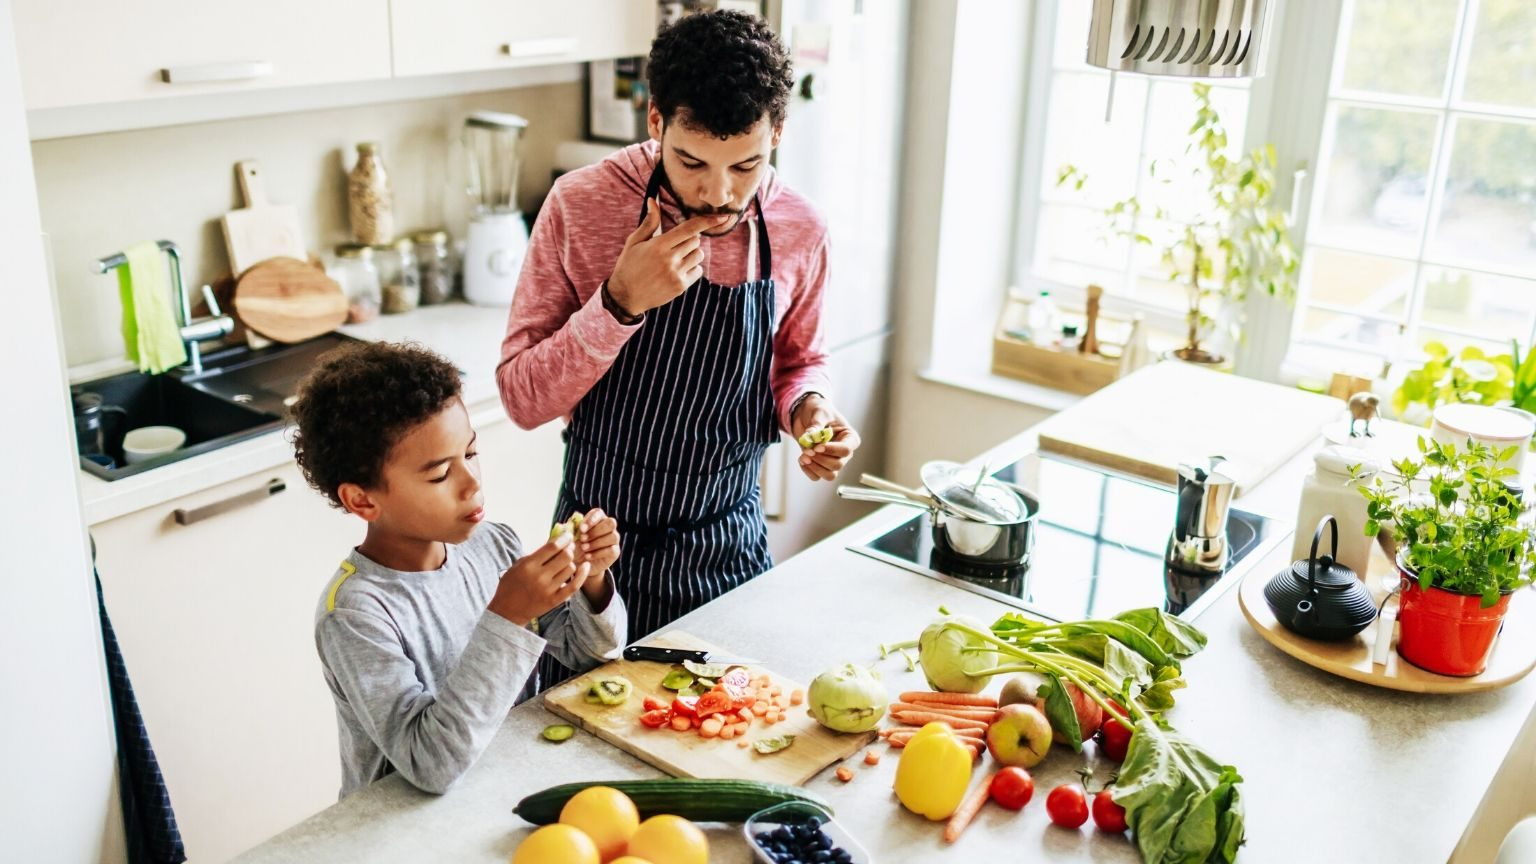 Dad cooking with son